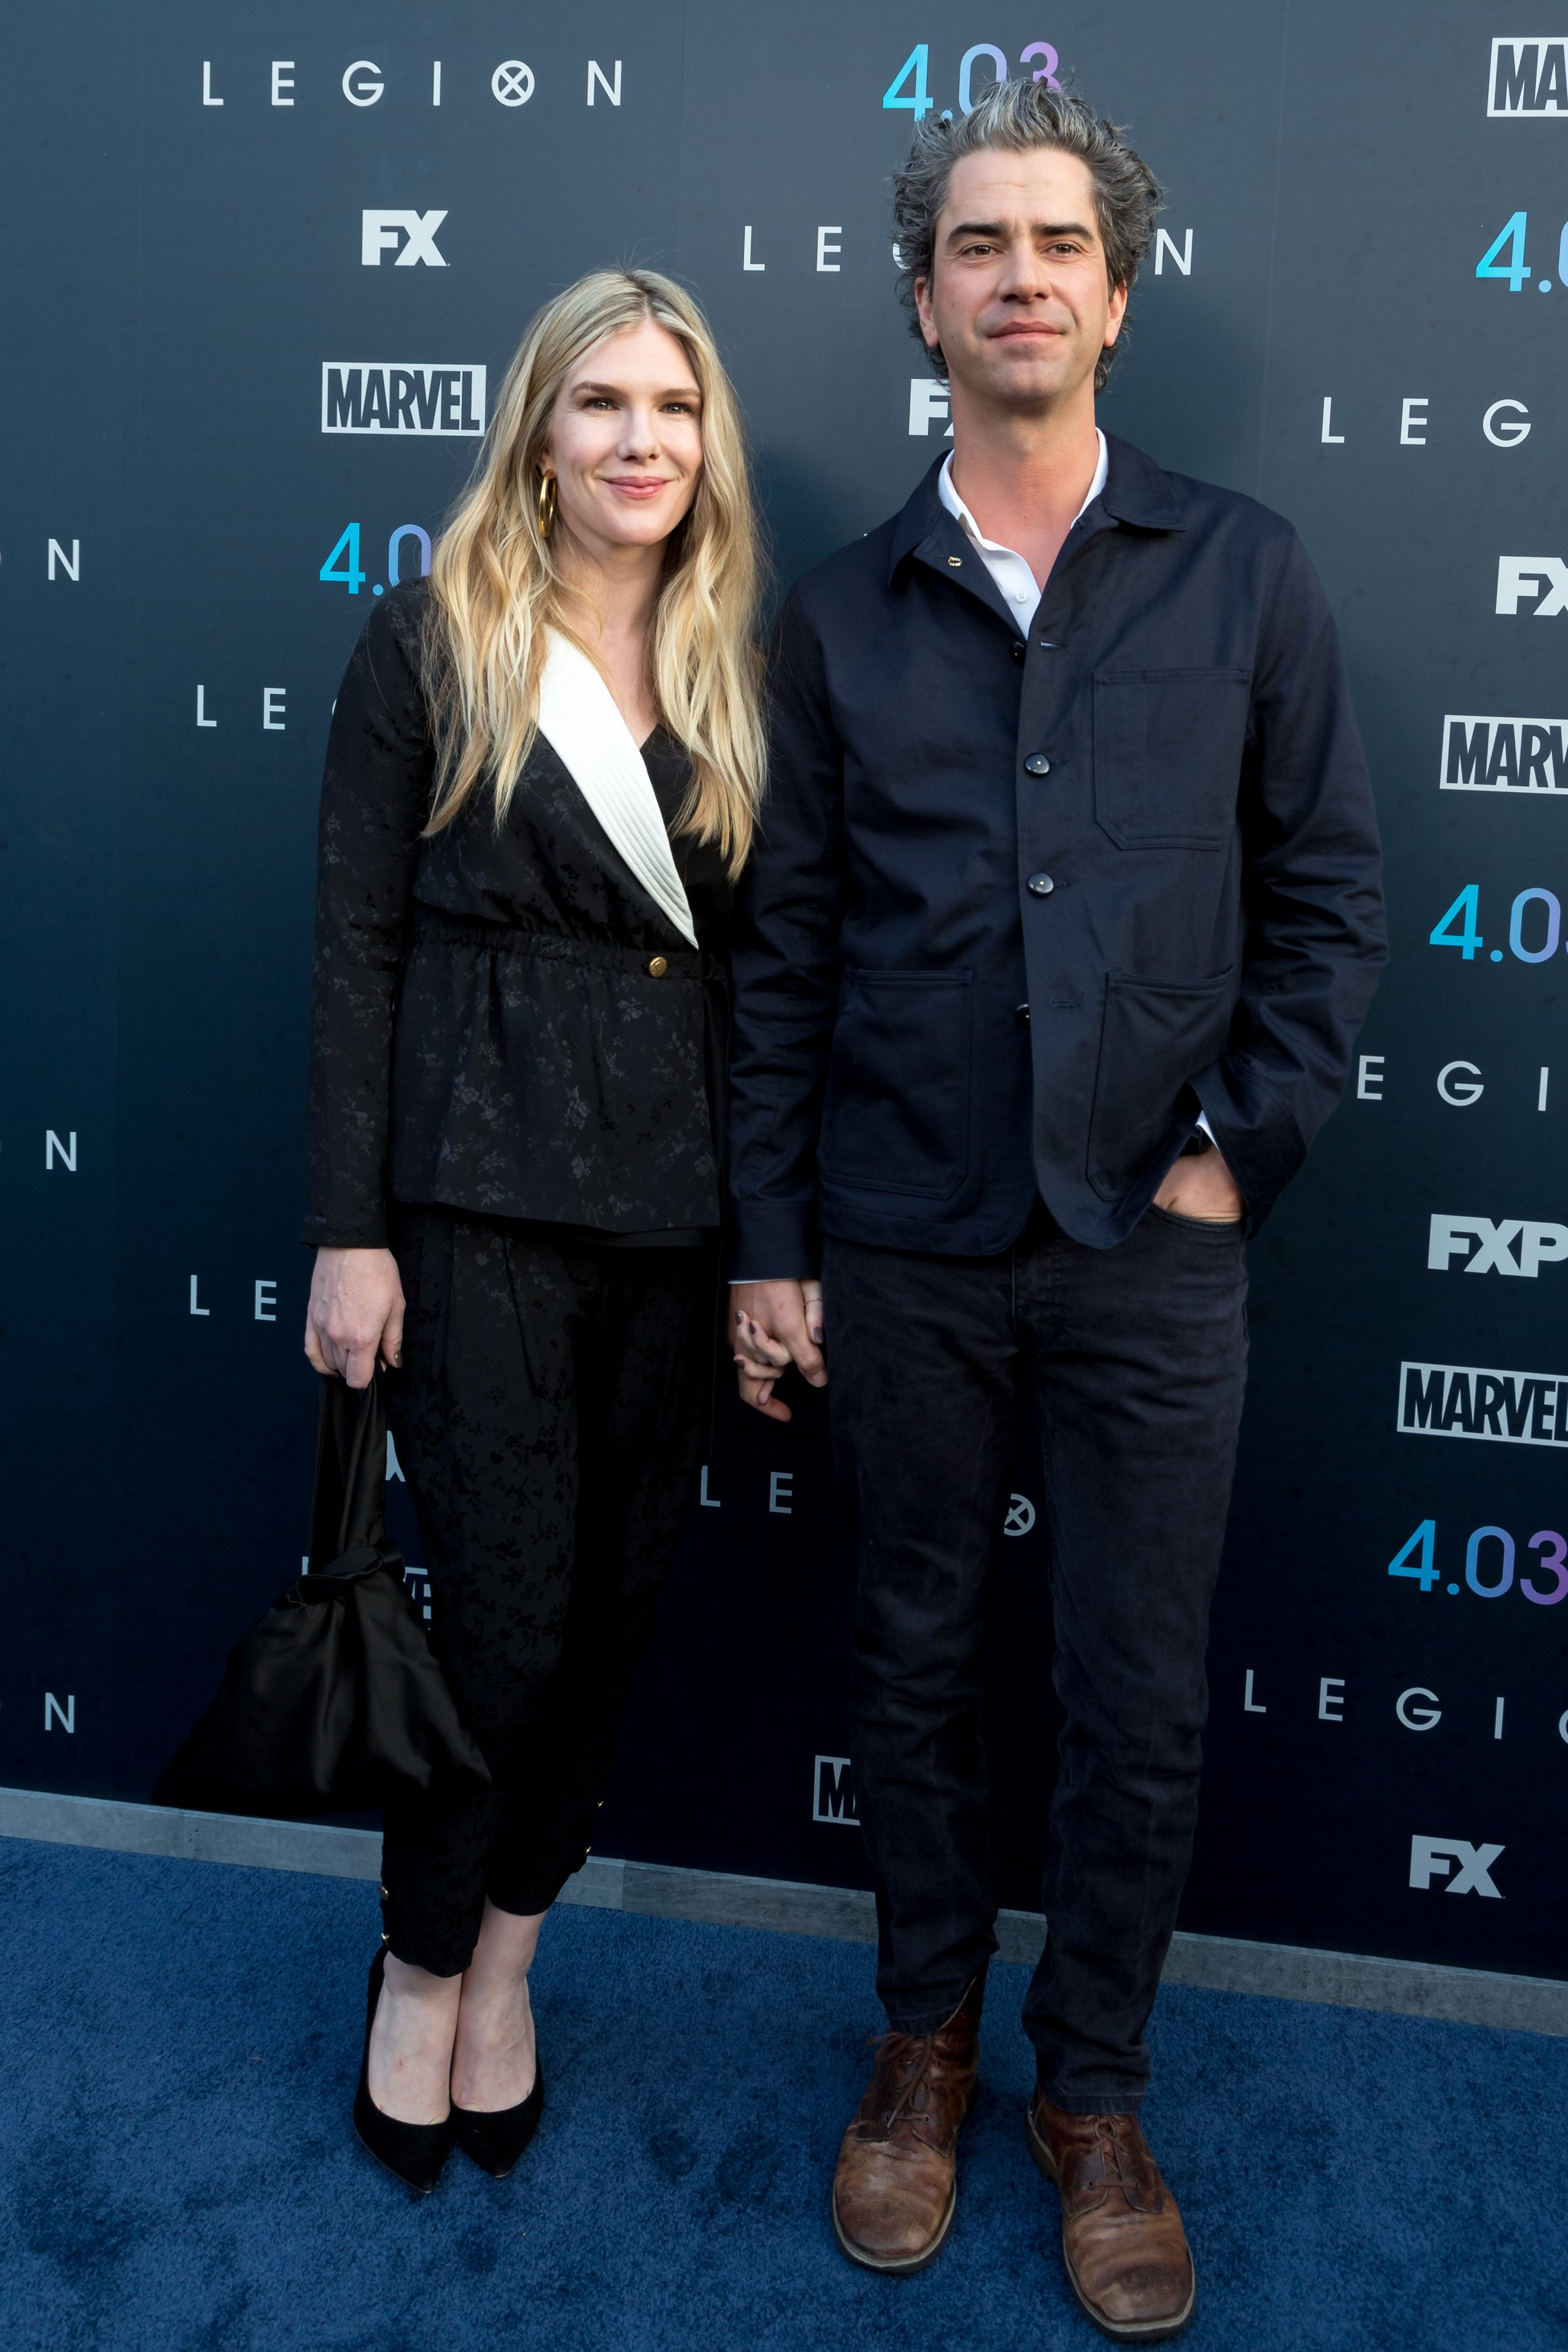 """Lily Rabe and Hamish Linklater attend the """"Legion"""" Season 2 Premiere at DGA Theater on April 2, 2018 in Los Angeles, California 